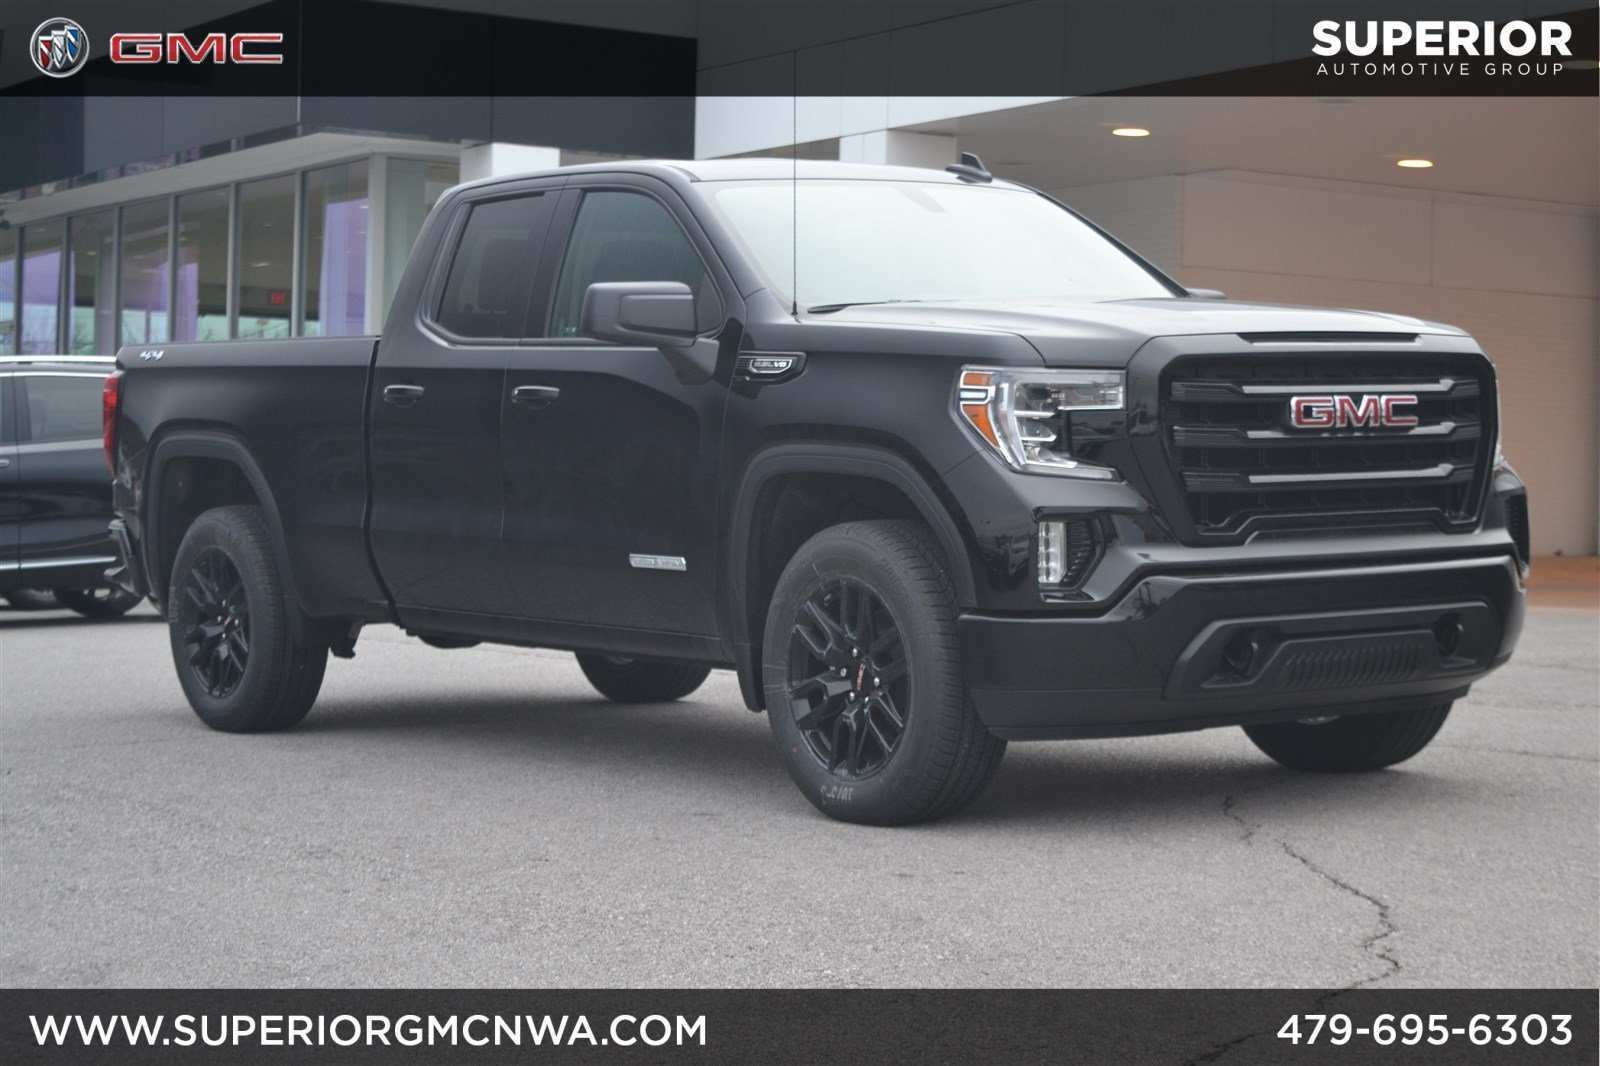 22 Concept of 2019 Gmc Elevation Exterior and Interior by 2019 Gmc Elevation